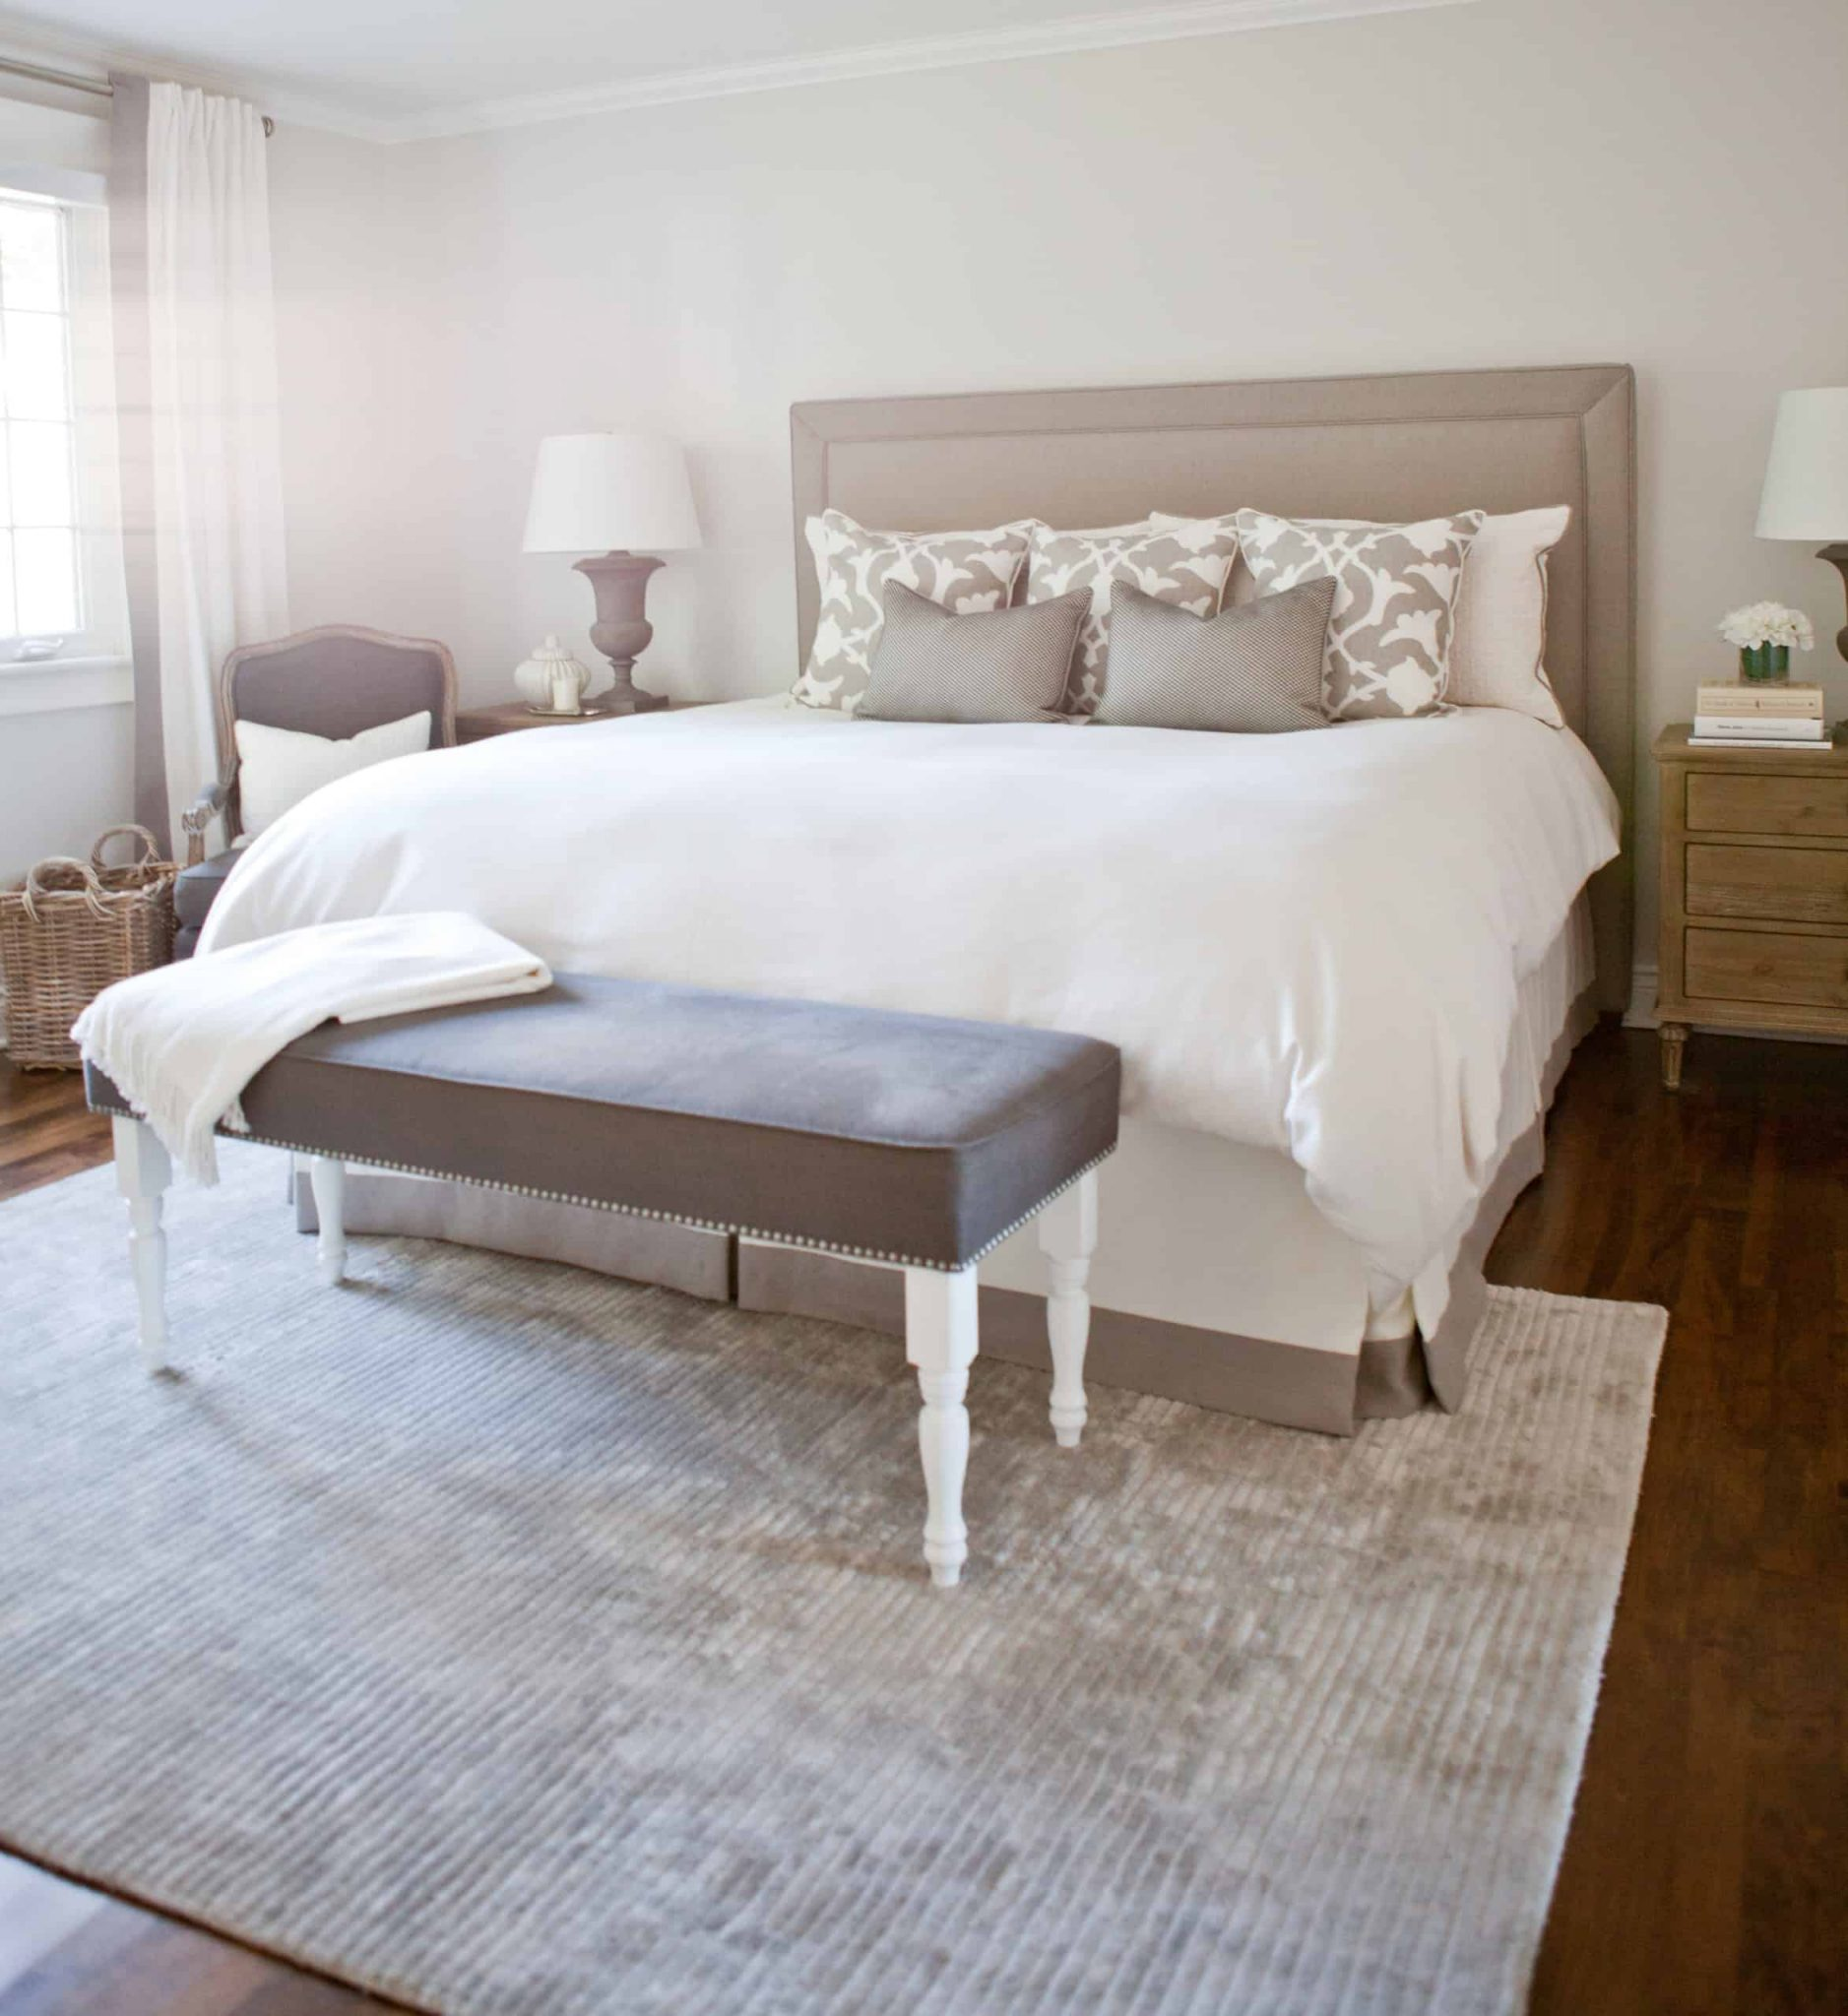 Brown bench at the end of the bed